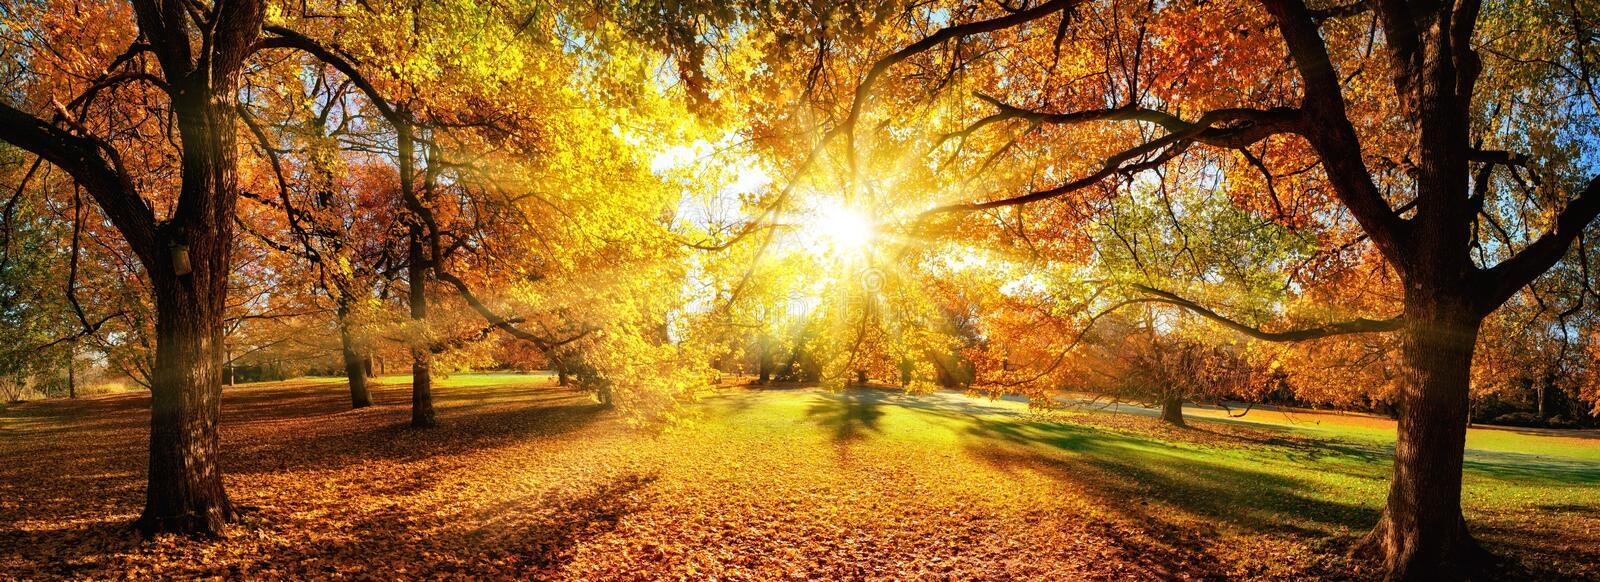 Amazing panoramic autumn scenery in a park stock photography